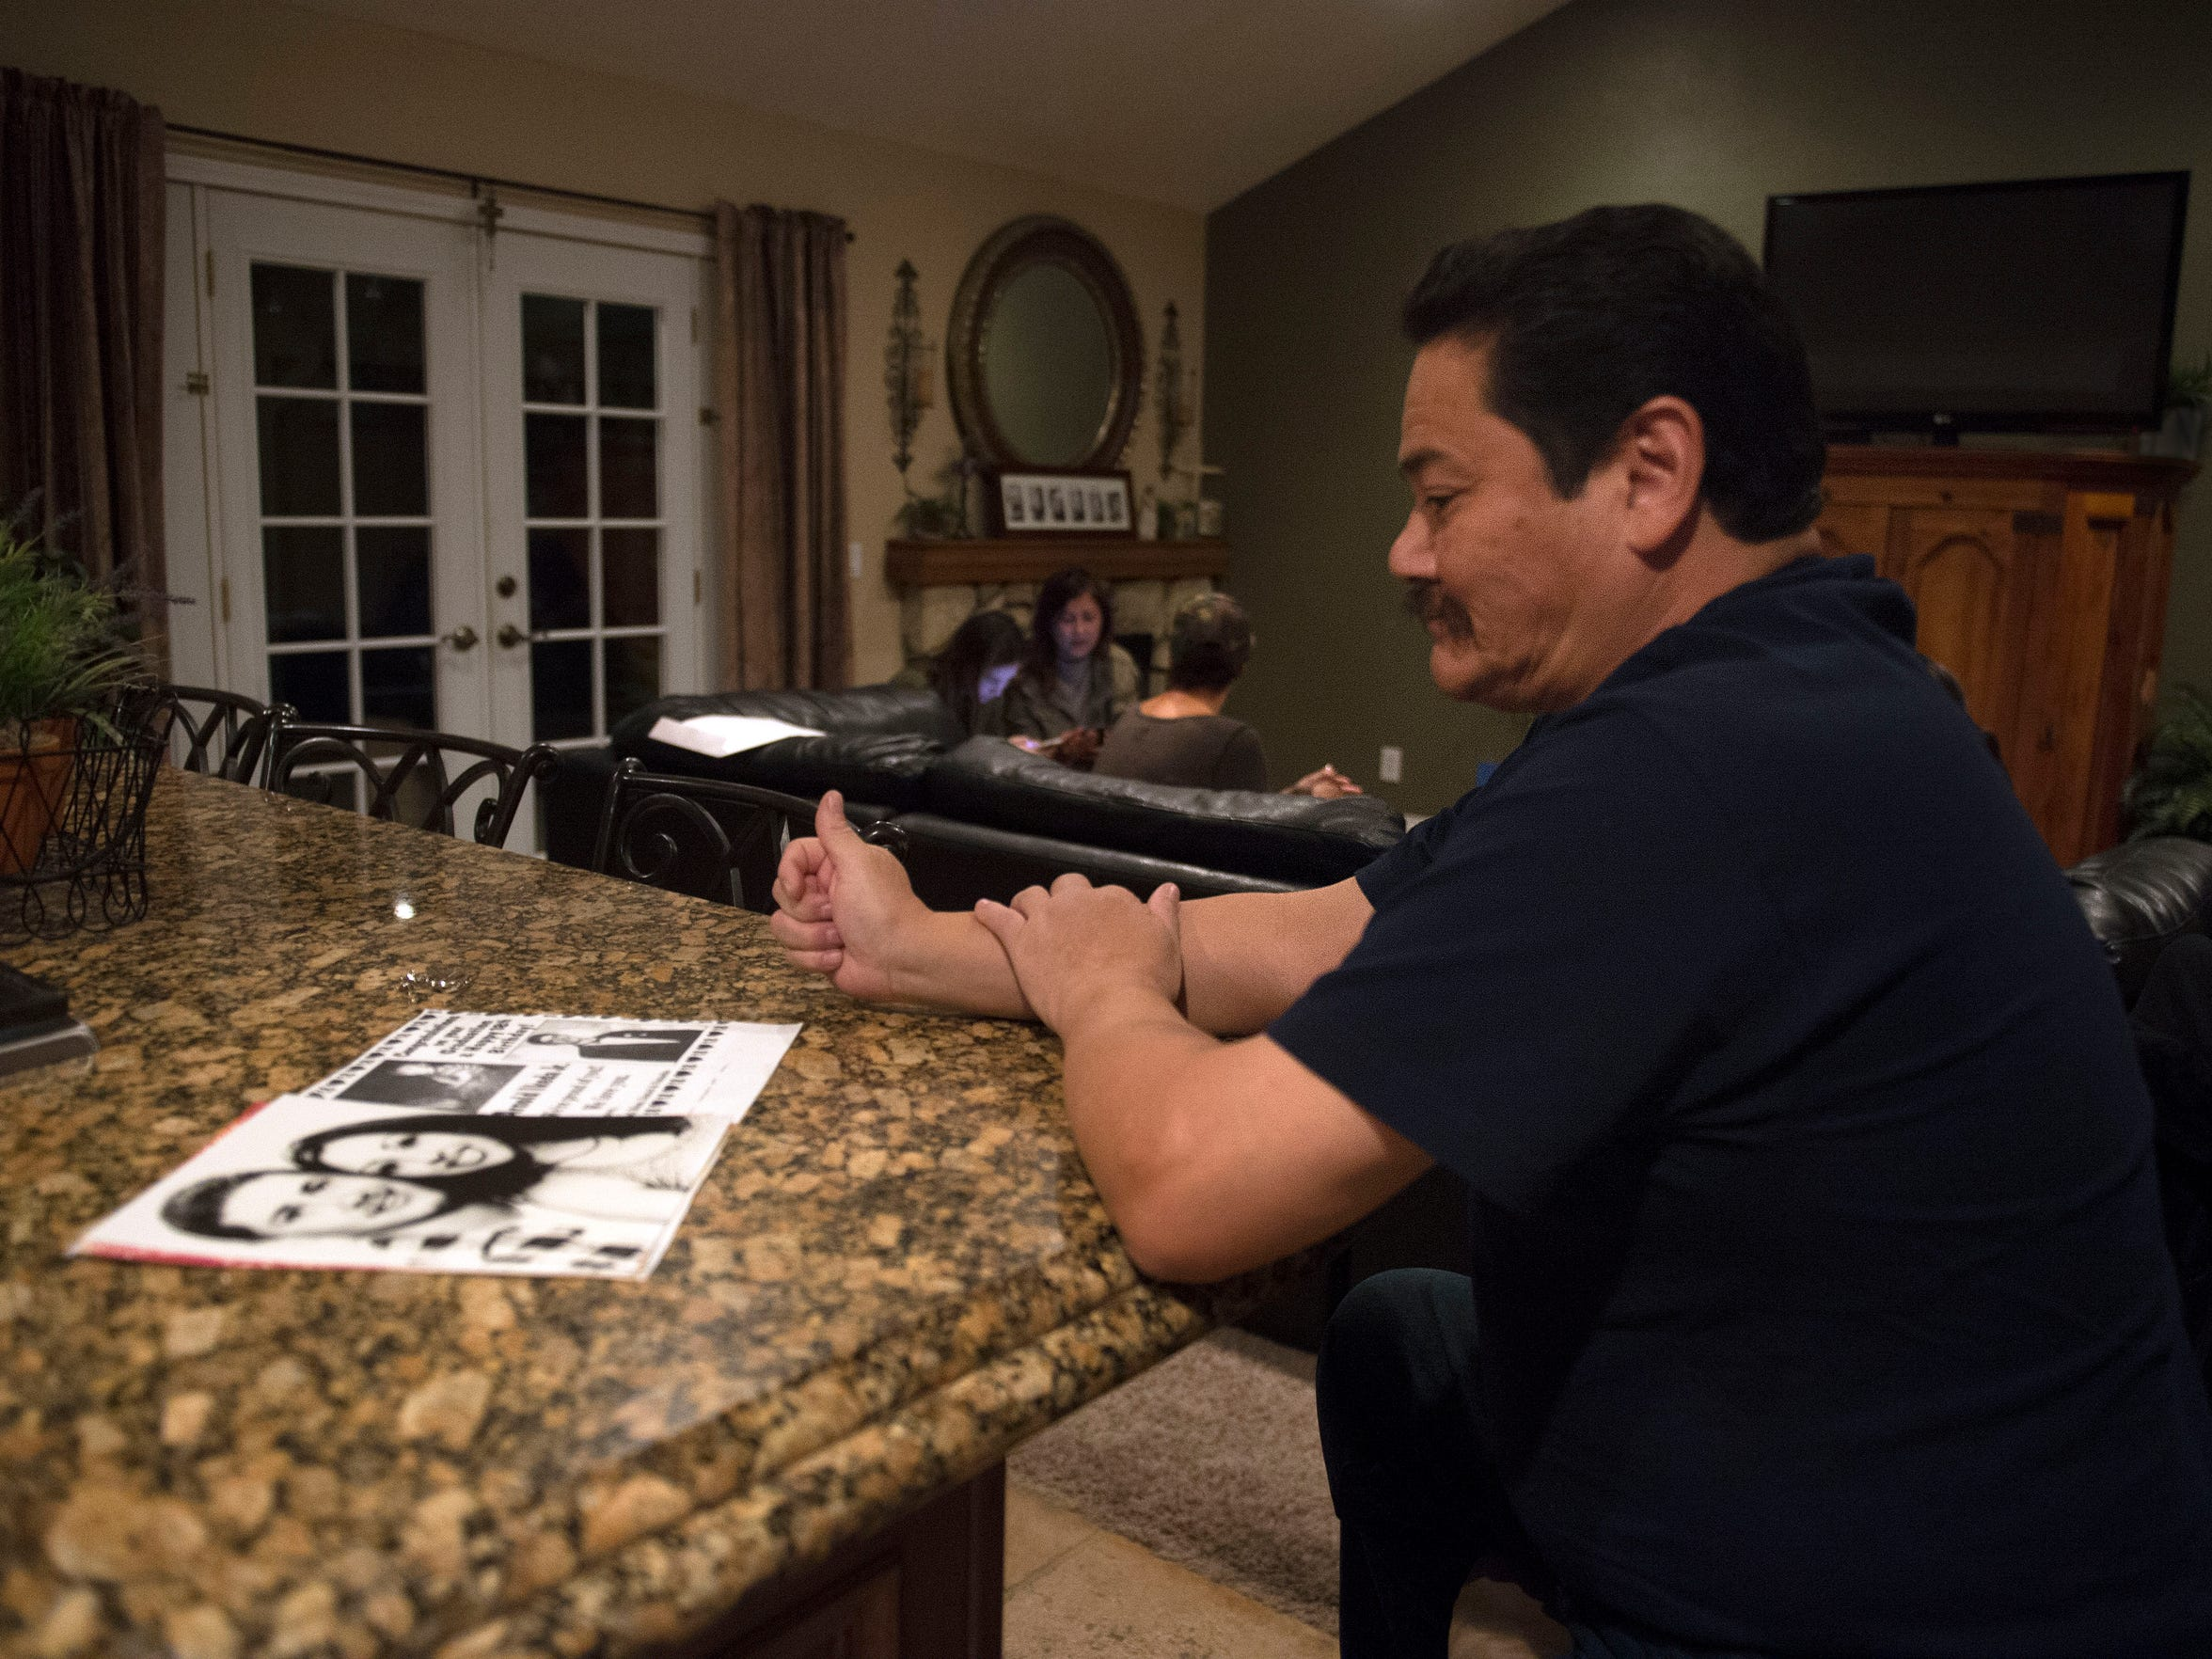 Arnold Ikeda Sr. looks at a photo of his son, Arnold